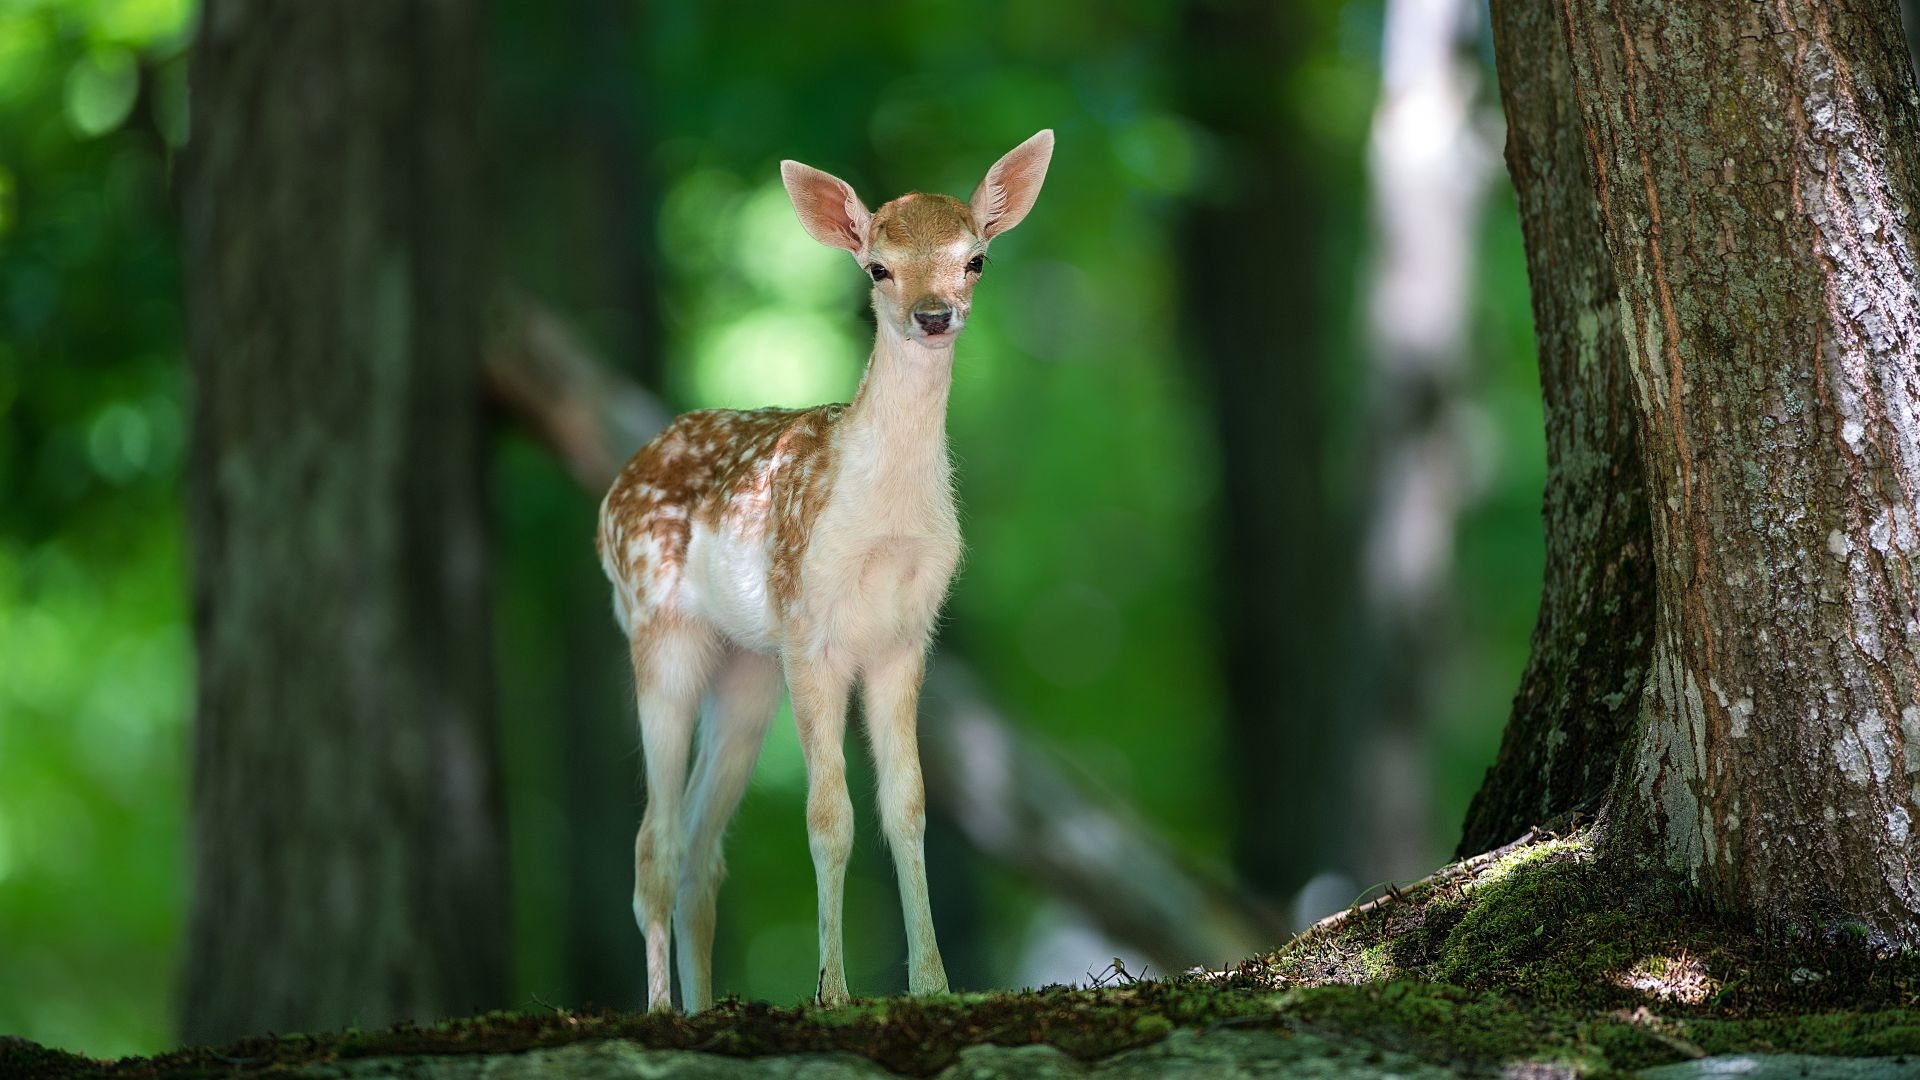 wallpaper deer, cute animals, forest, animals #4575